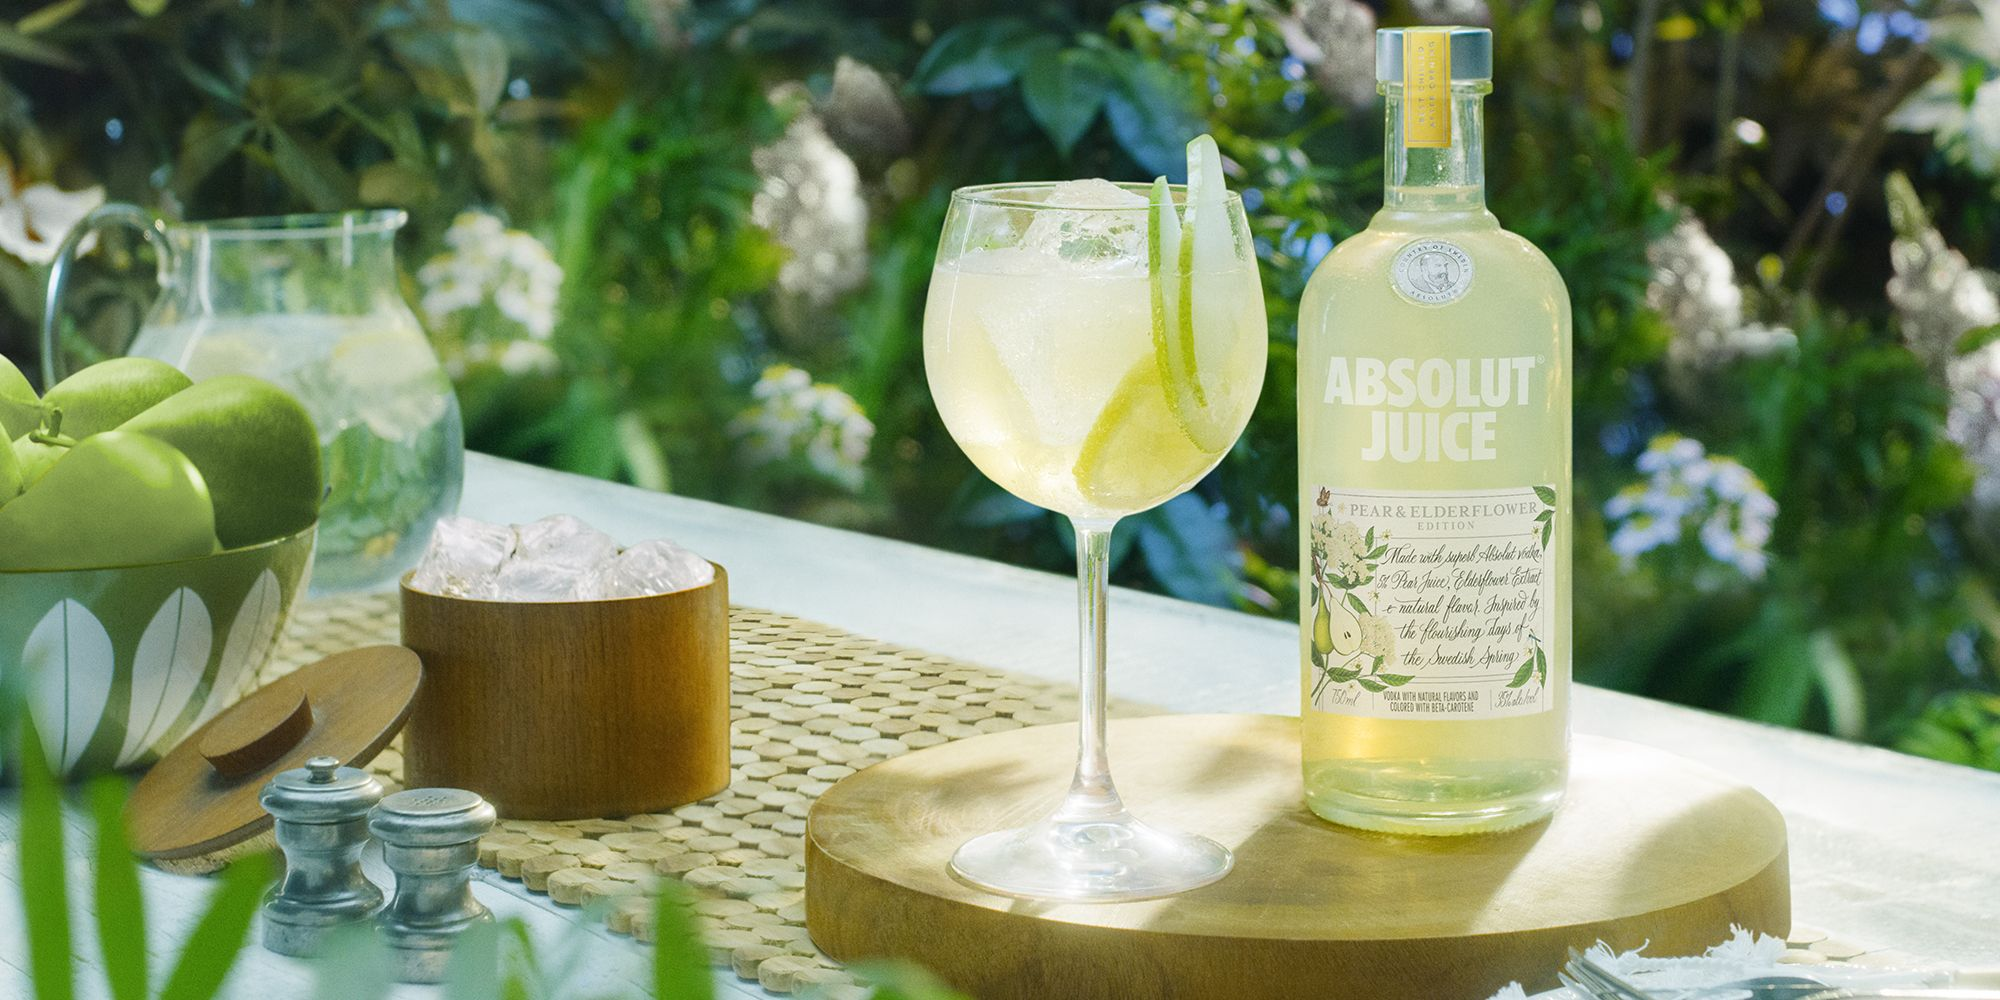 Absolut Vodka's New Pear & Elderflower Flavor Is Made With Real Fruit Juice